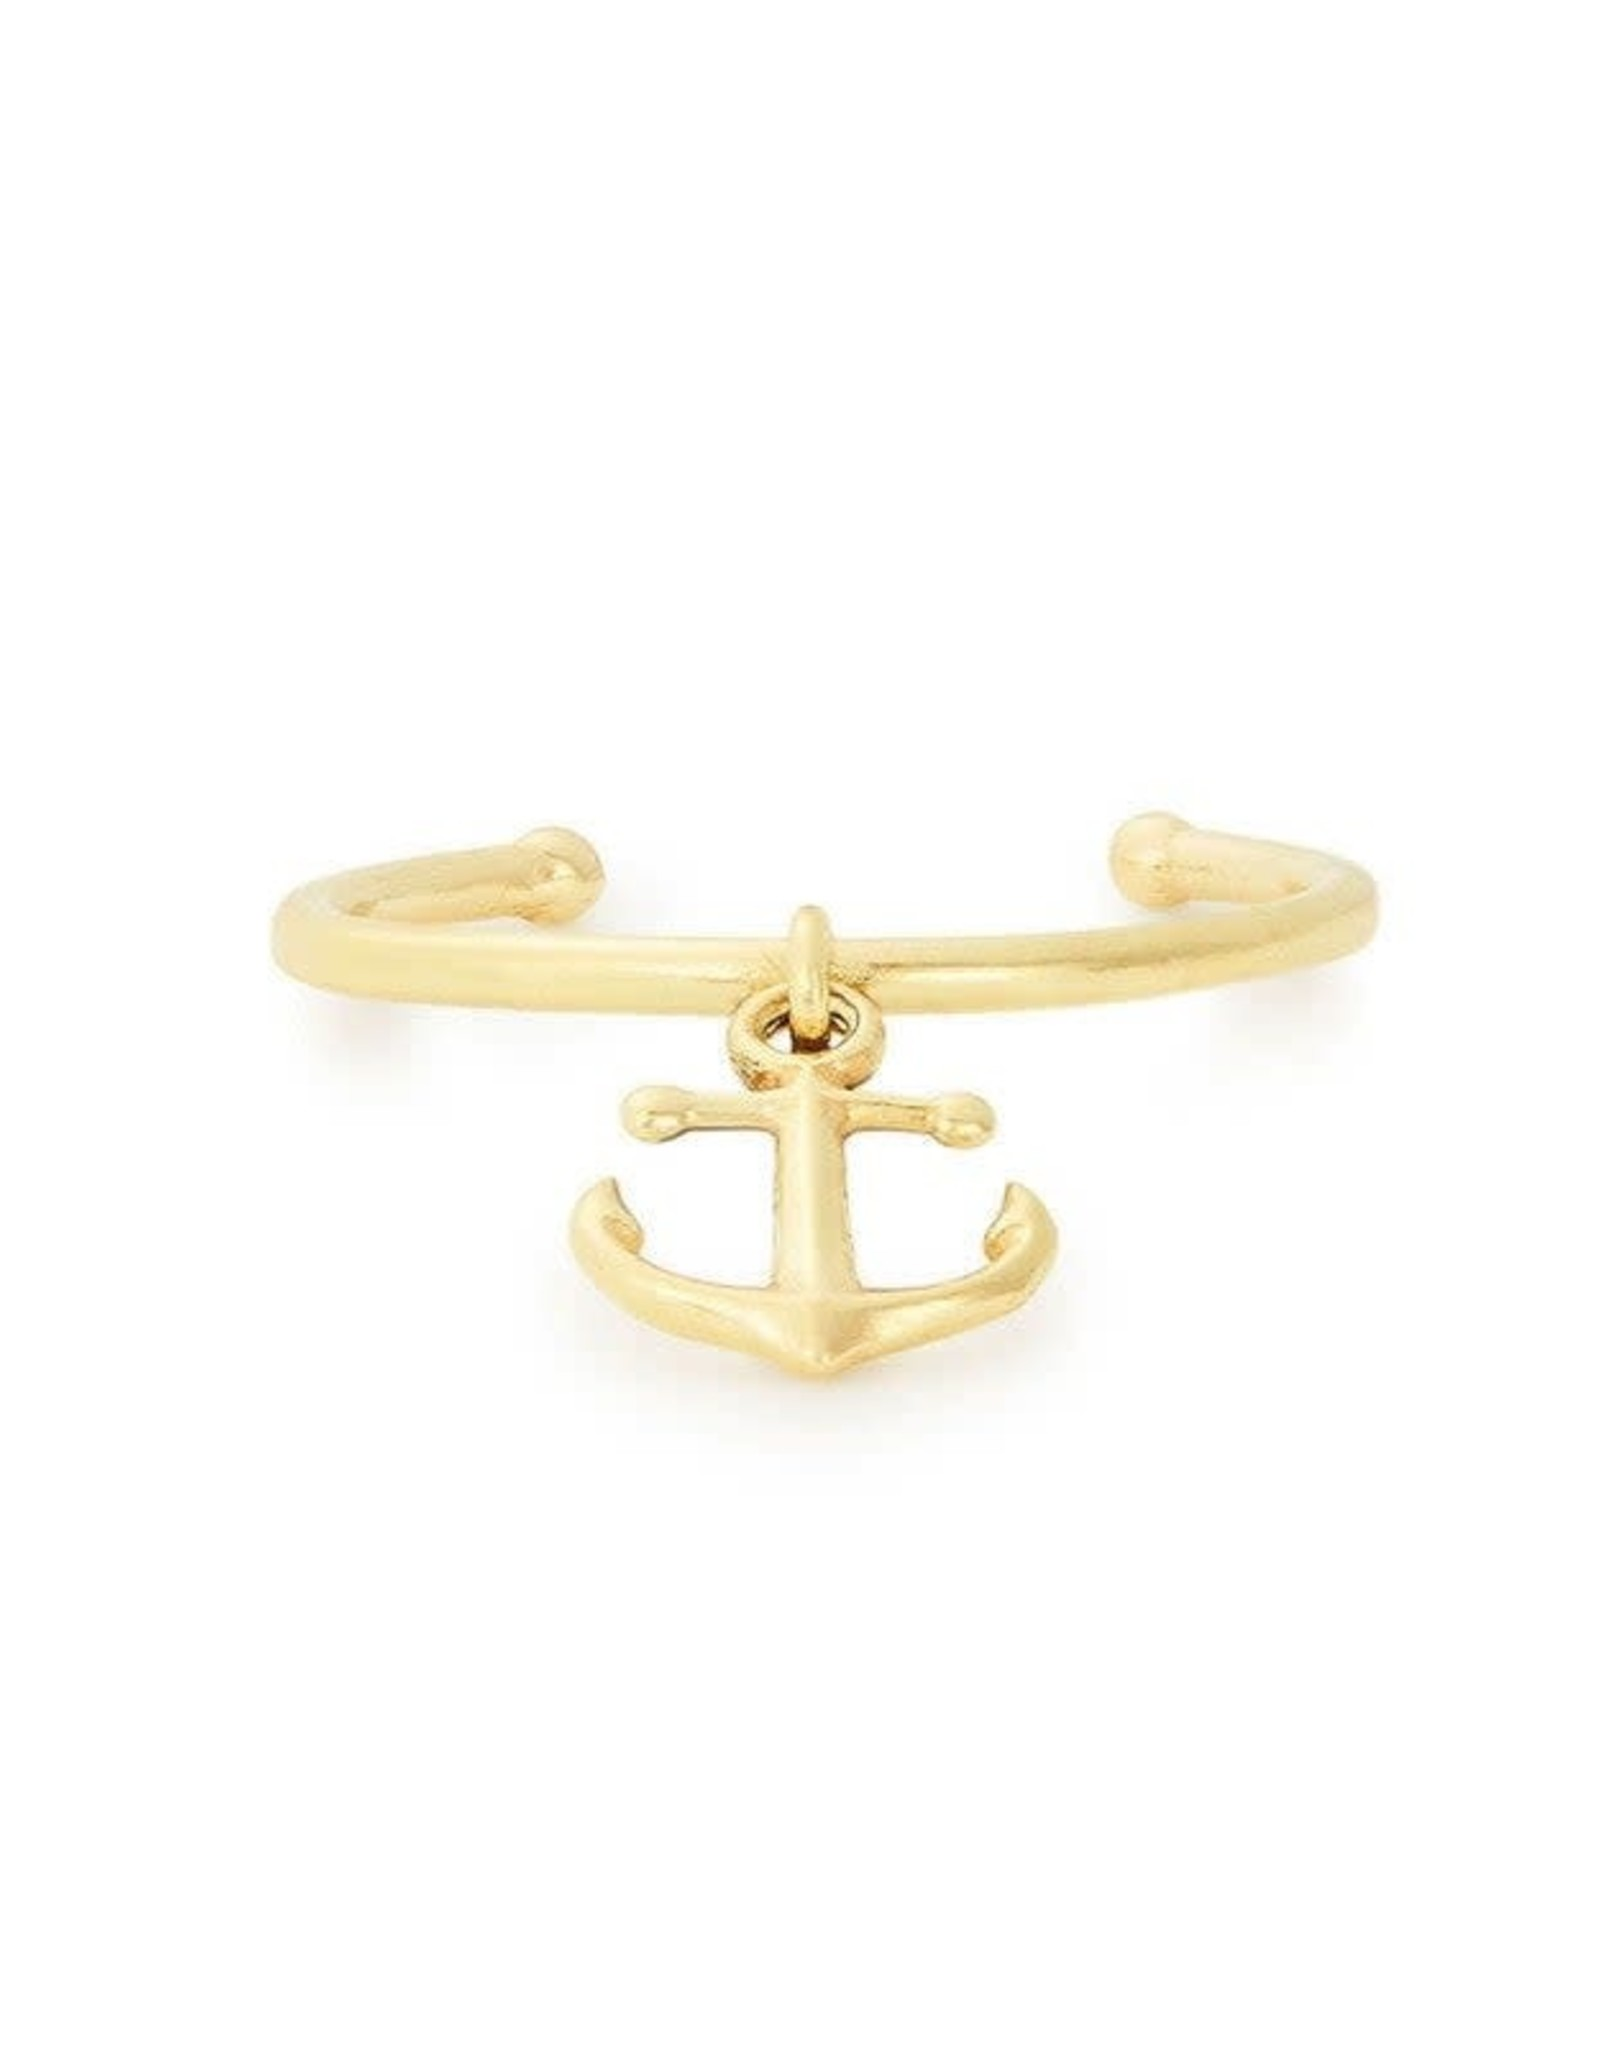 Alex and Ani Anchor Adjustable Ring, 14kt Gold Plated FINAL SALE